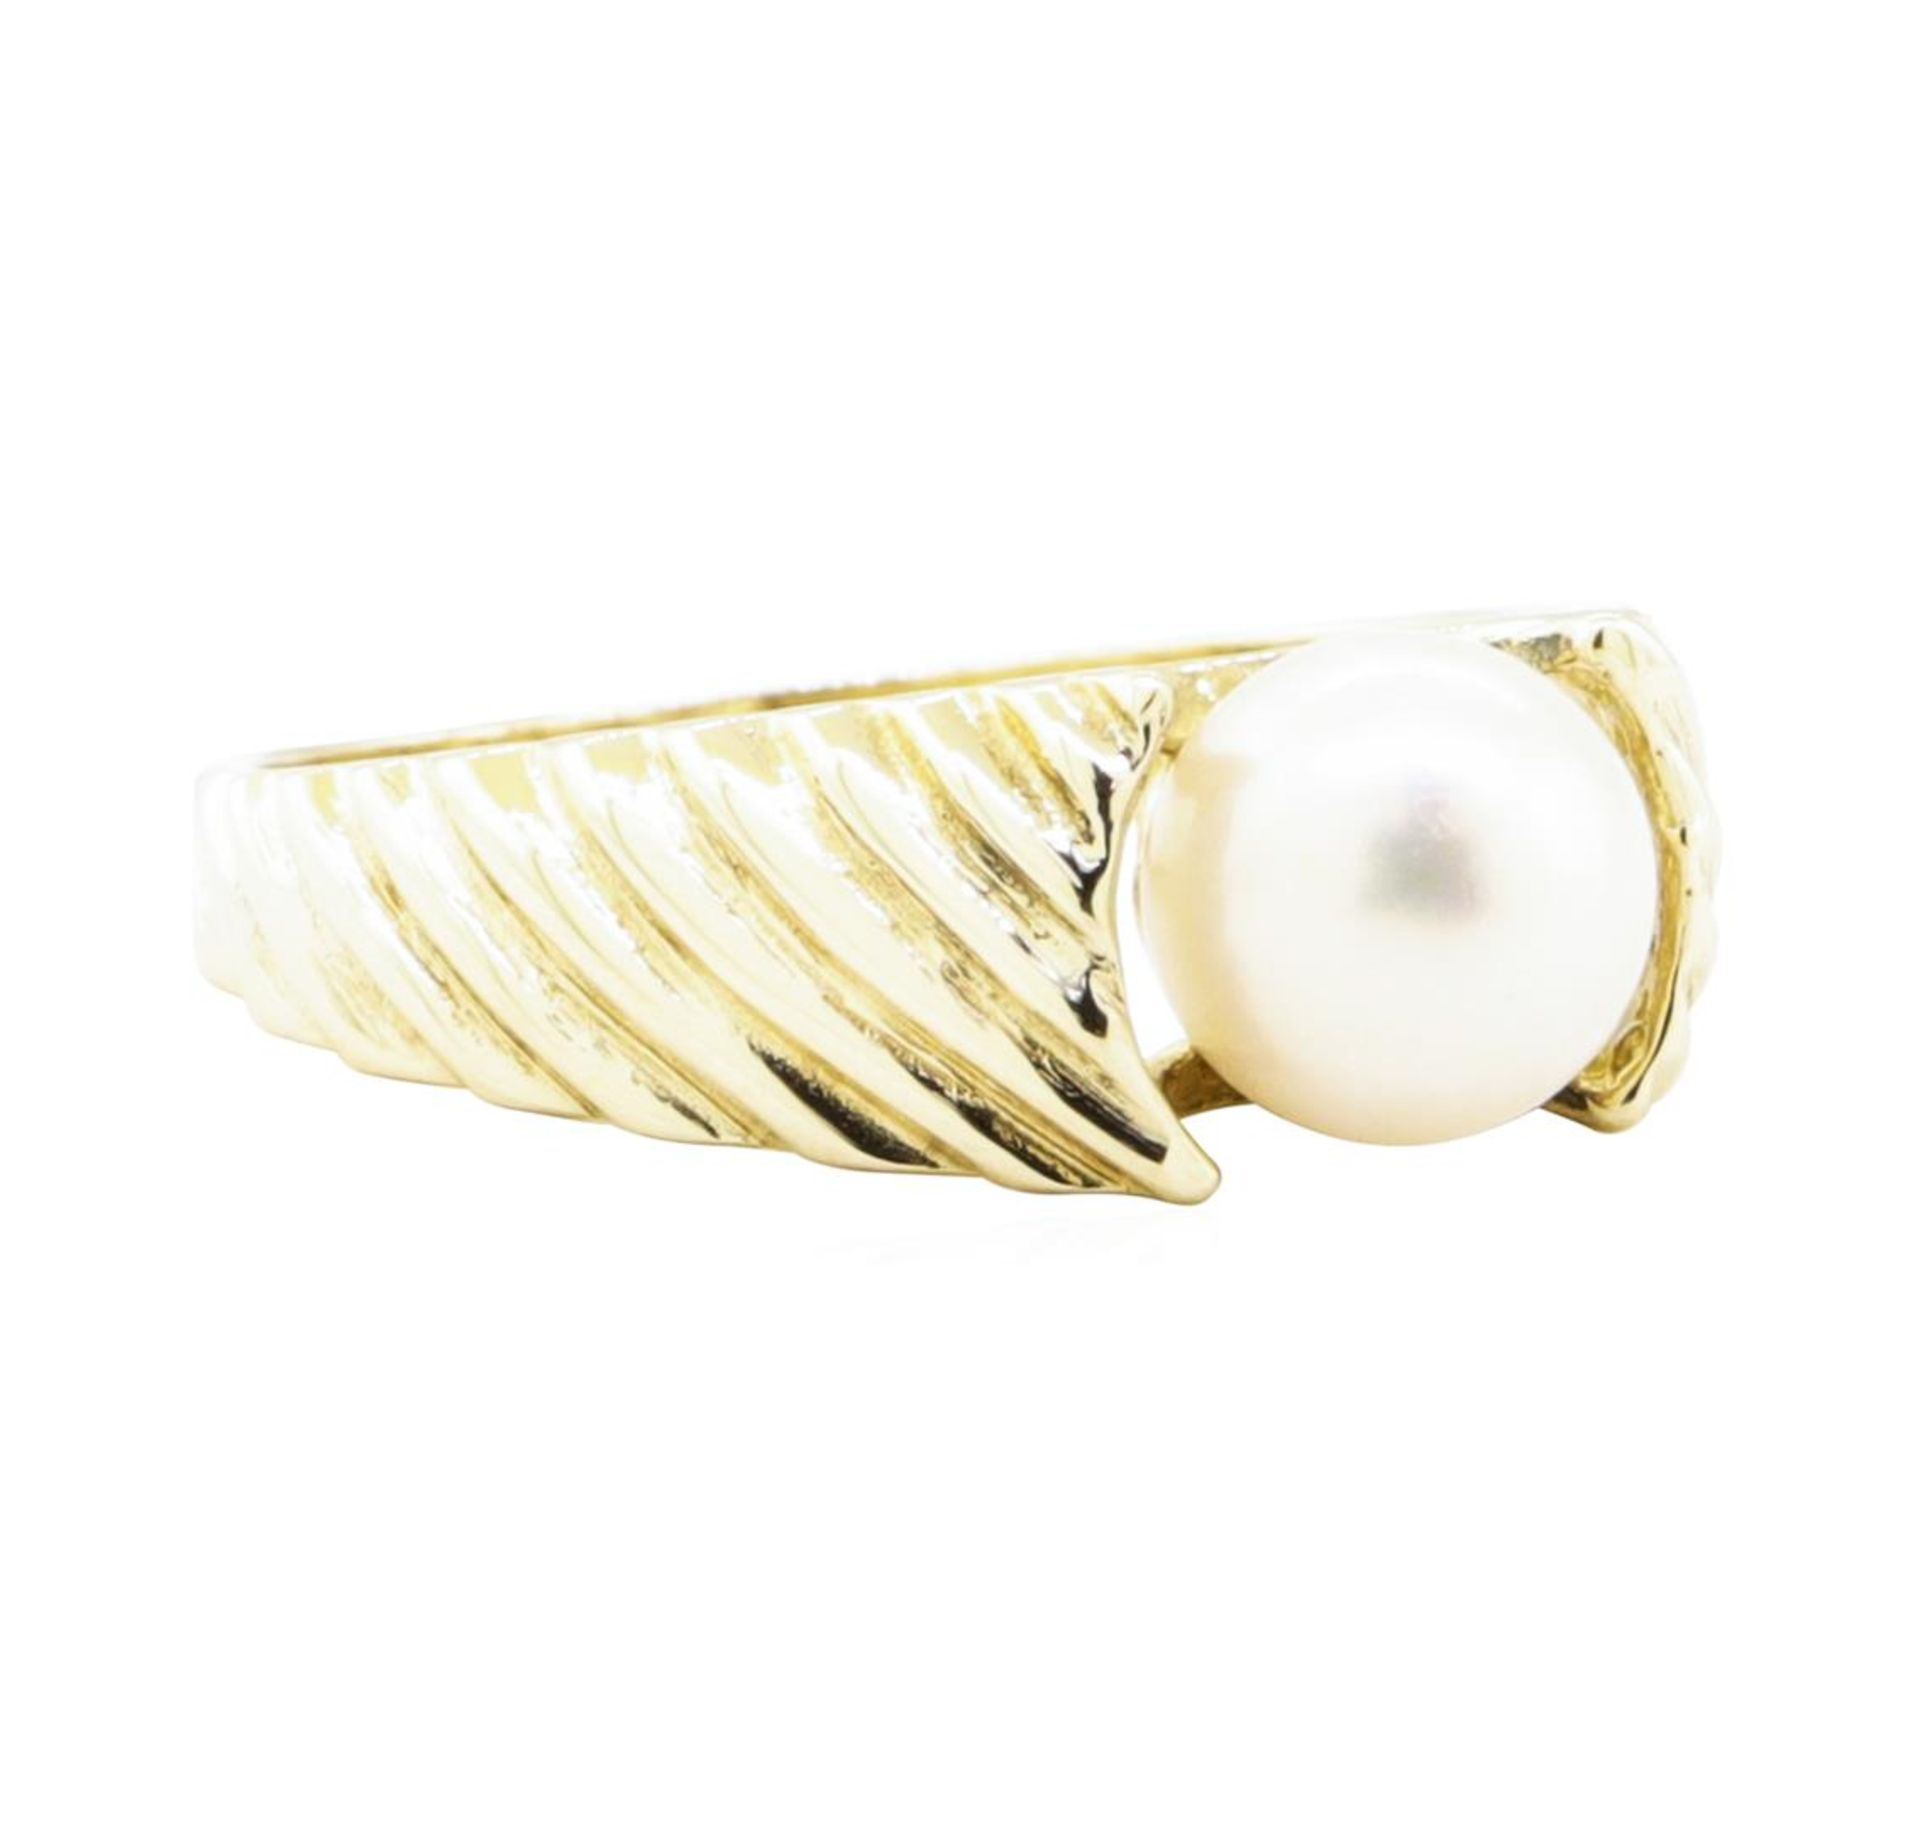 7mm Cultured Pearl Ring - 14KT Yellow Gold